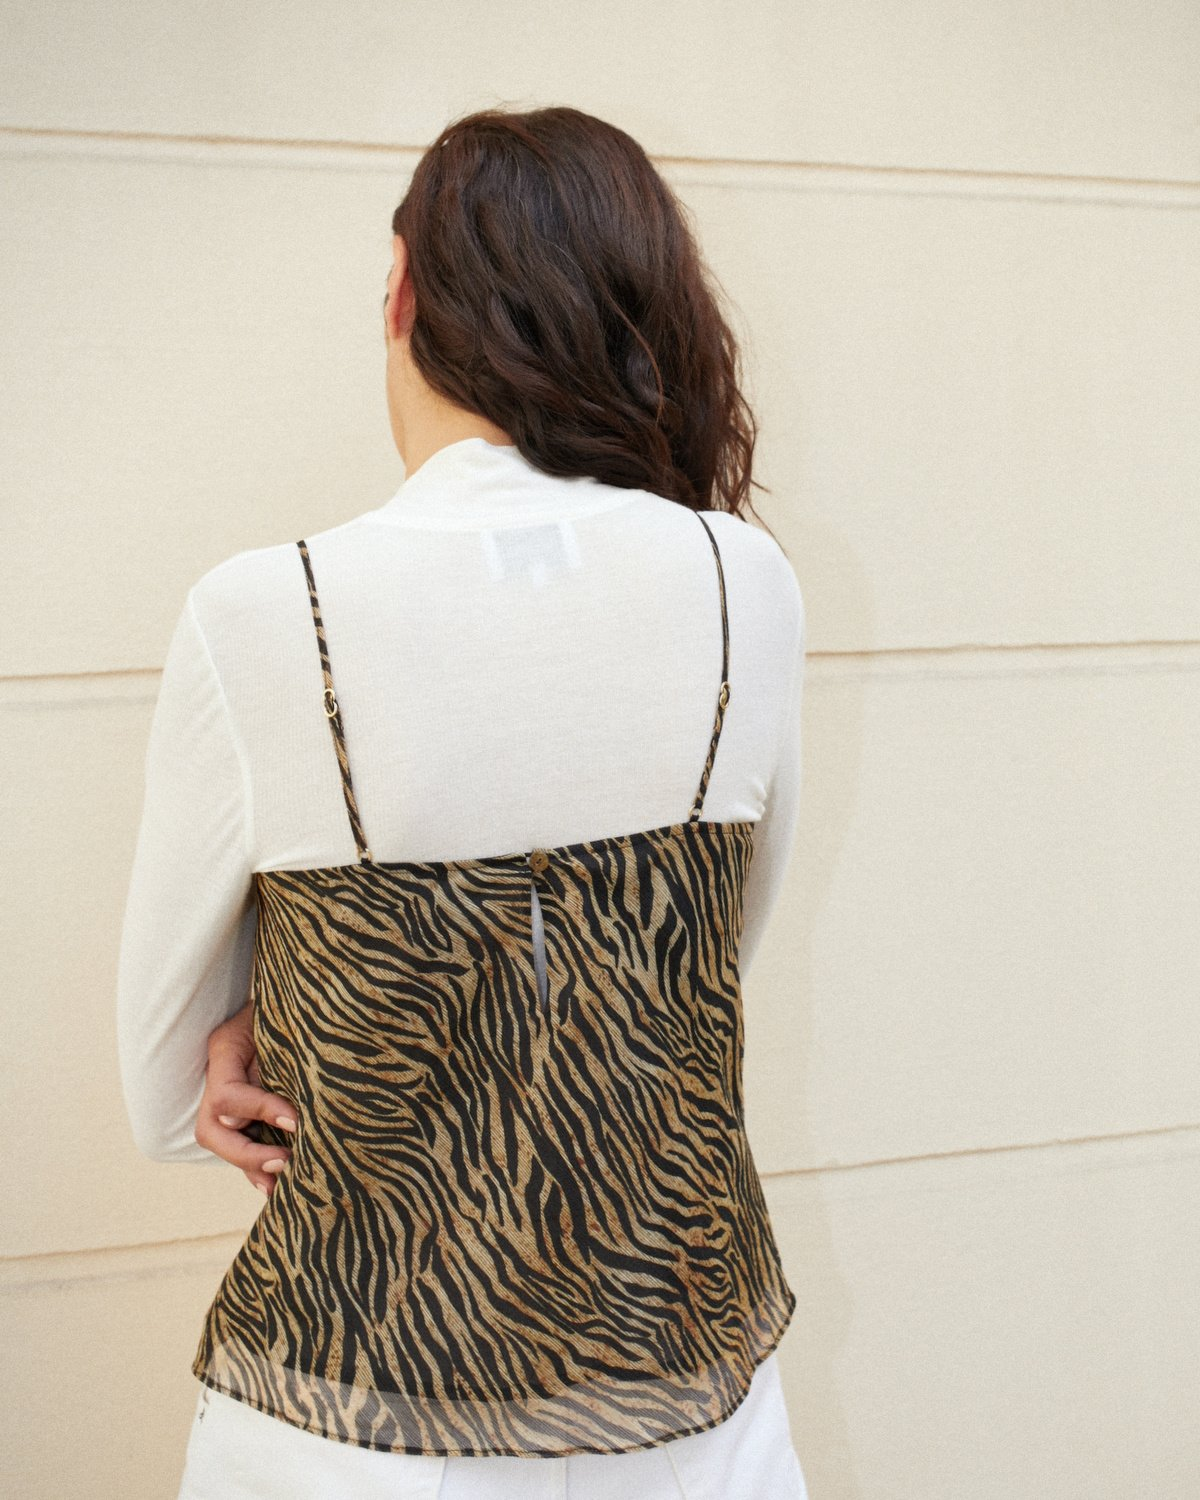 ROSE - Ruched camisole top - Tiger print